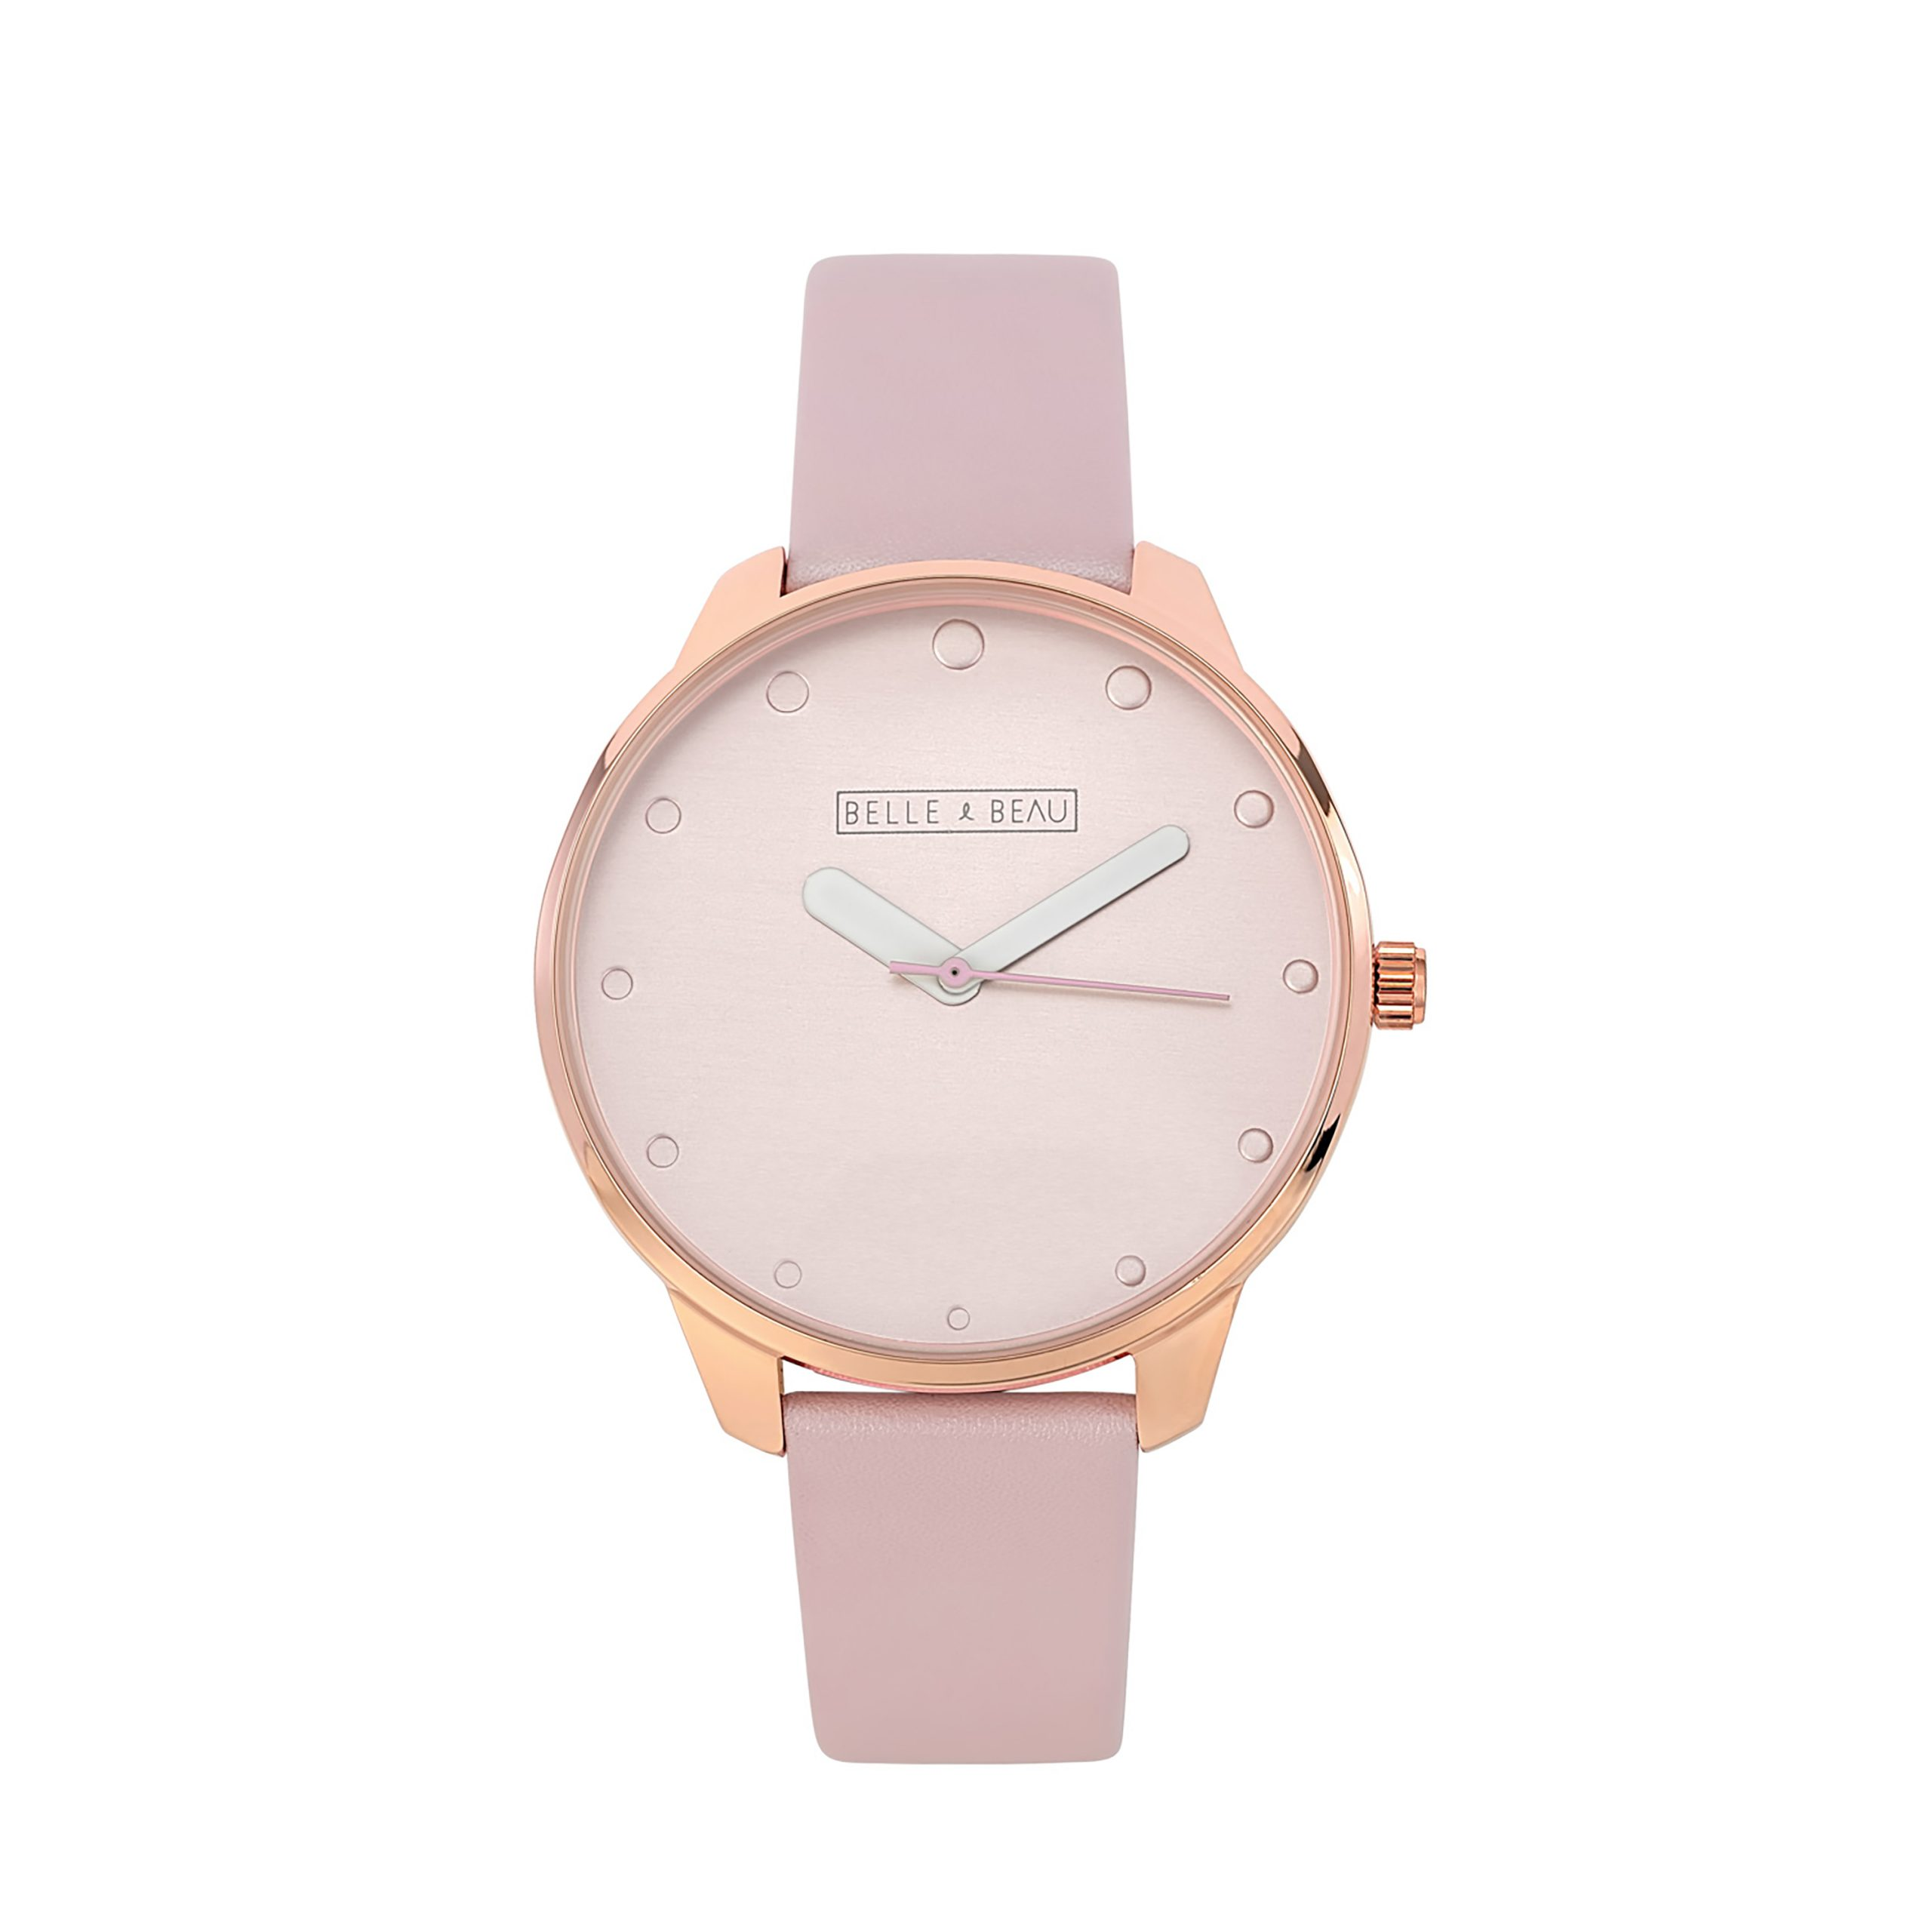 Cosmetica Blush Watch